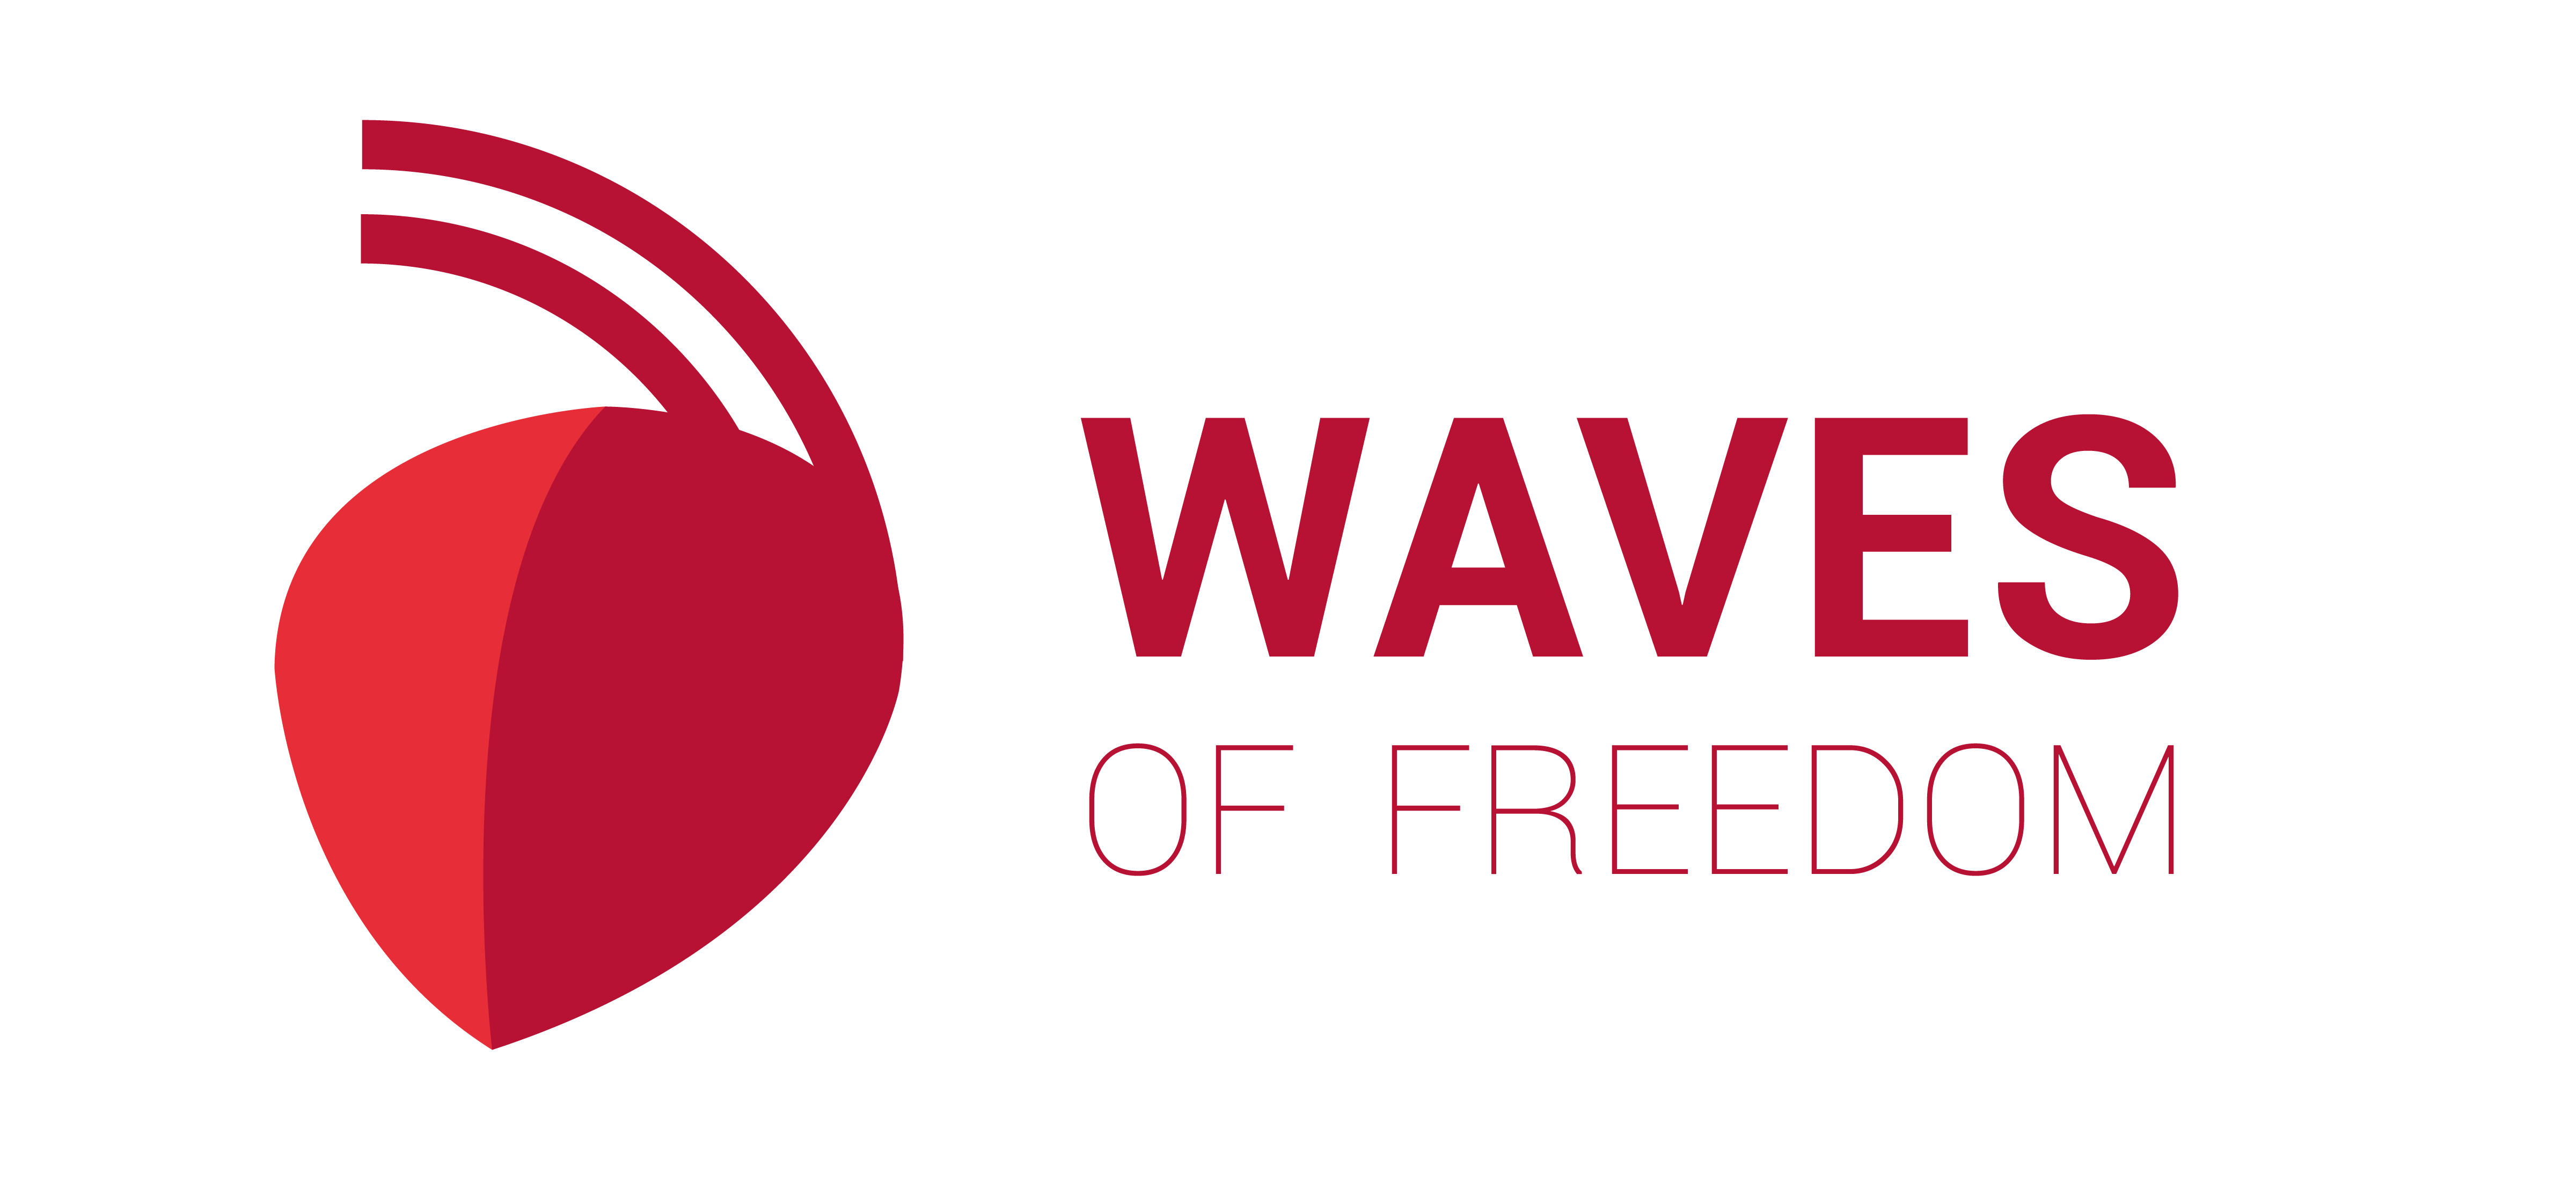 Waves Of Freedom